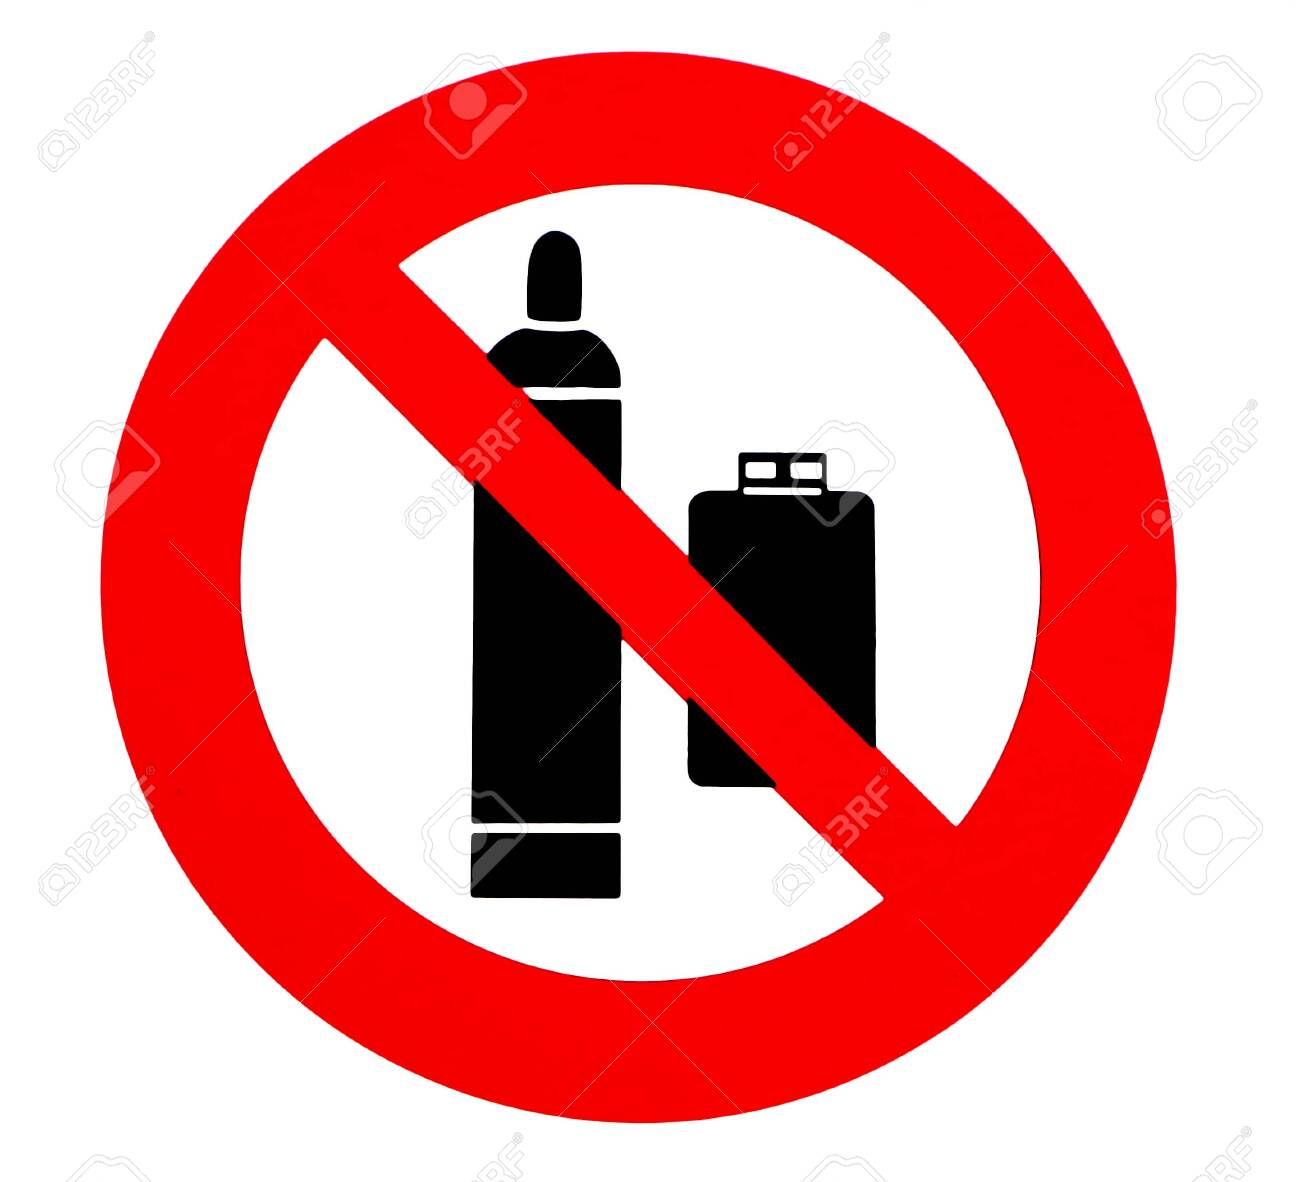 Propane gas cylinders are not allowed. Prohibition and safety sign. - 145169520